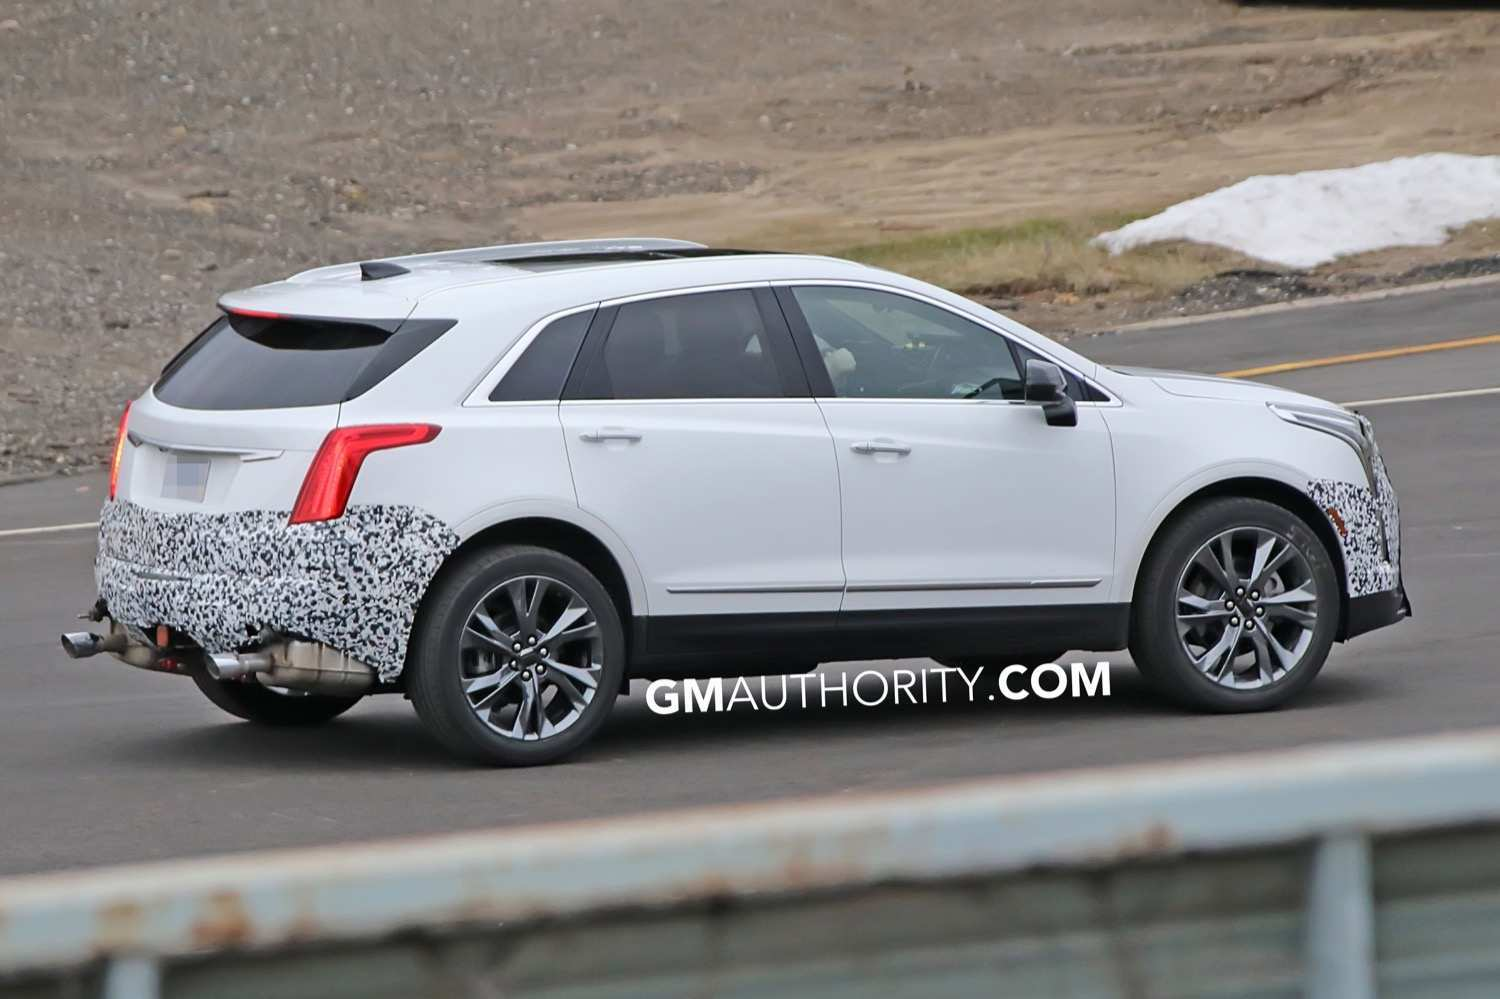 51 New Spy Shots 2020 Cadillac Xt5 First Drive with Spy Shots 2020 Cadillac Xt5